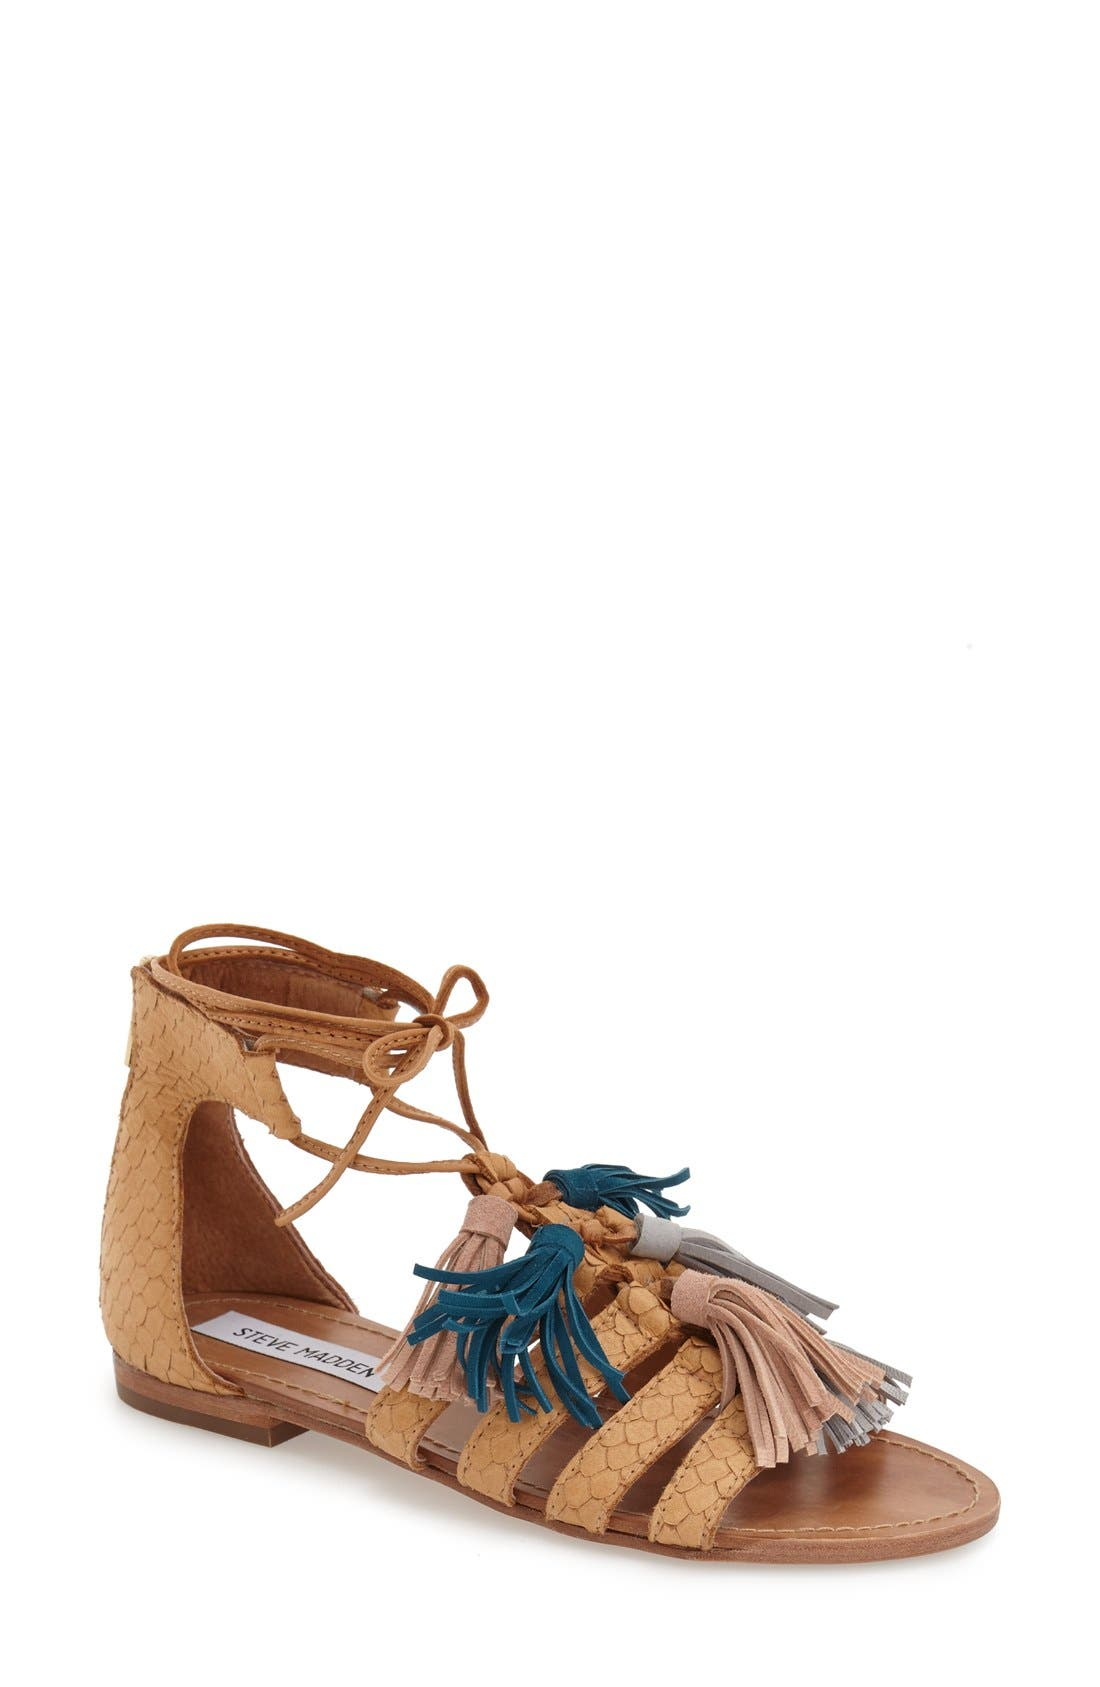 Alternate Image 1 Selected - Steve Madden 'Monrowe' Tassel Sandal (Women)